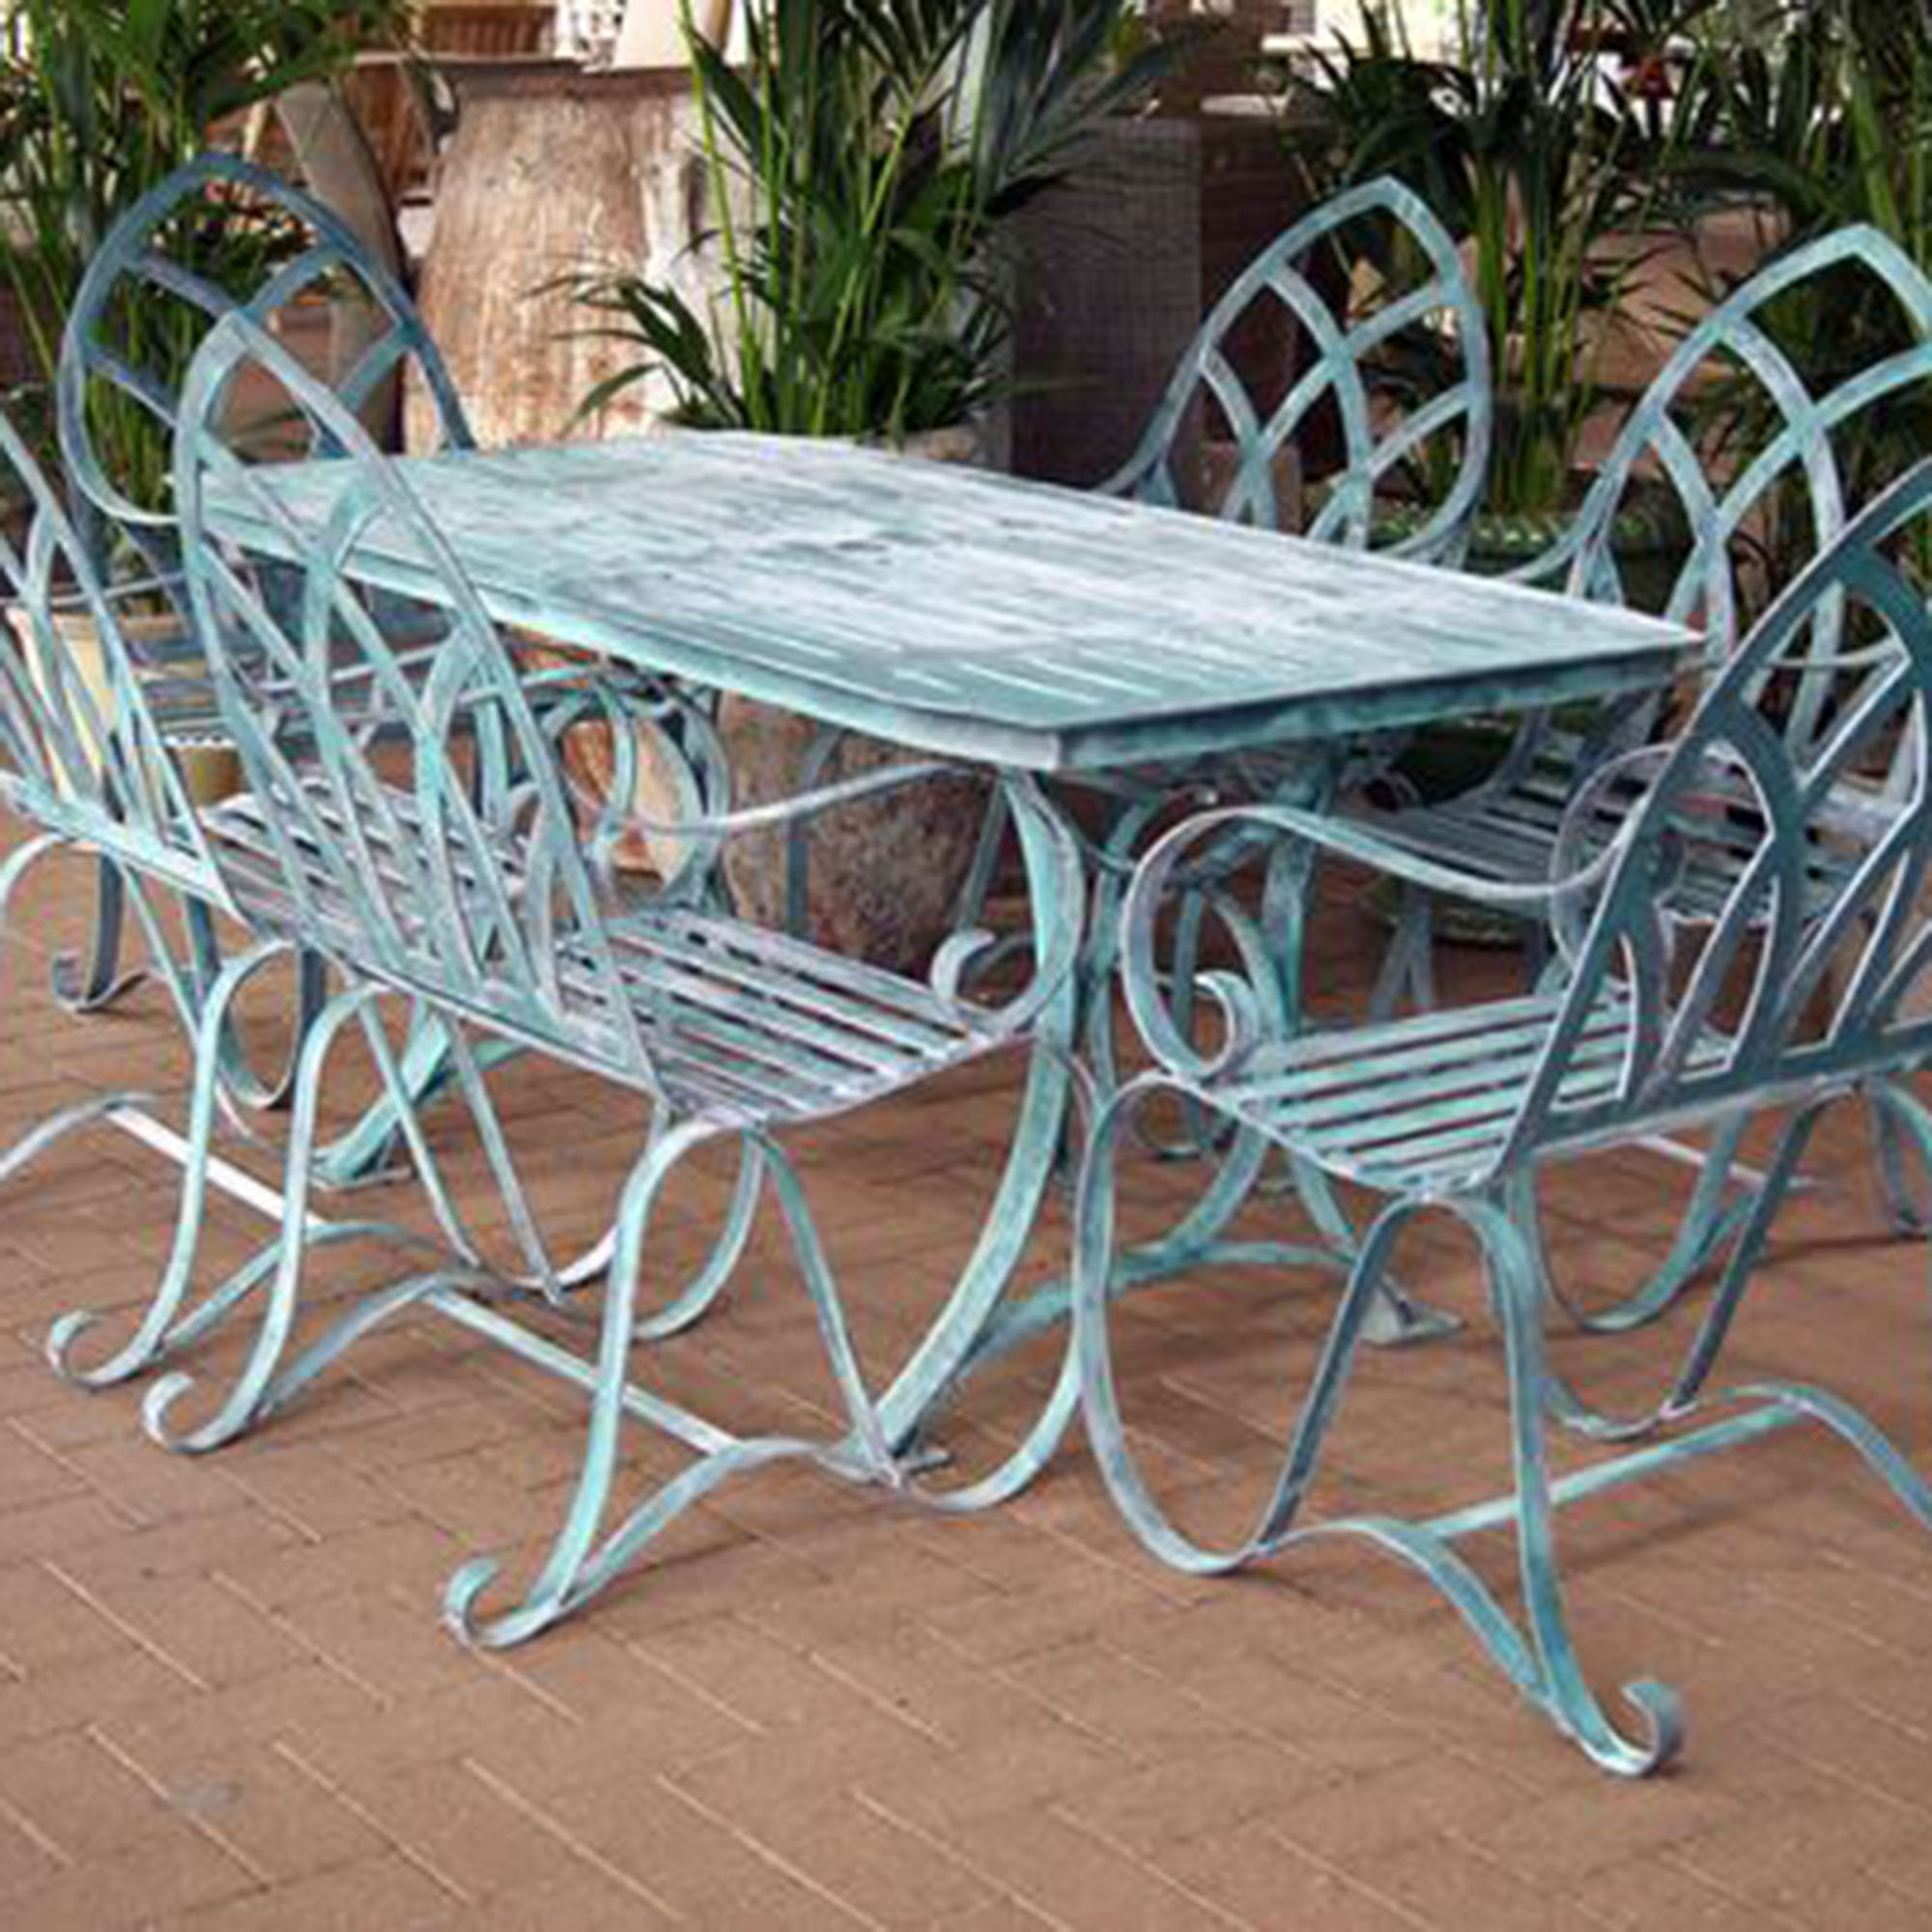 why you should buy cast aluminum garden furniture - Garden Furniture Table And Chairs